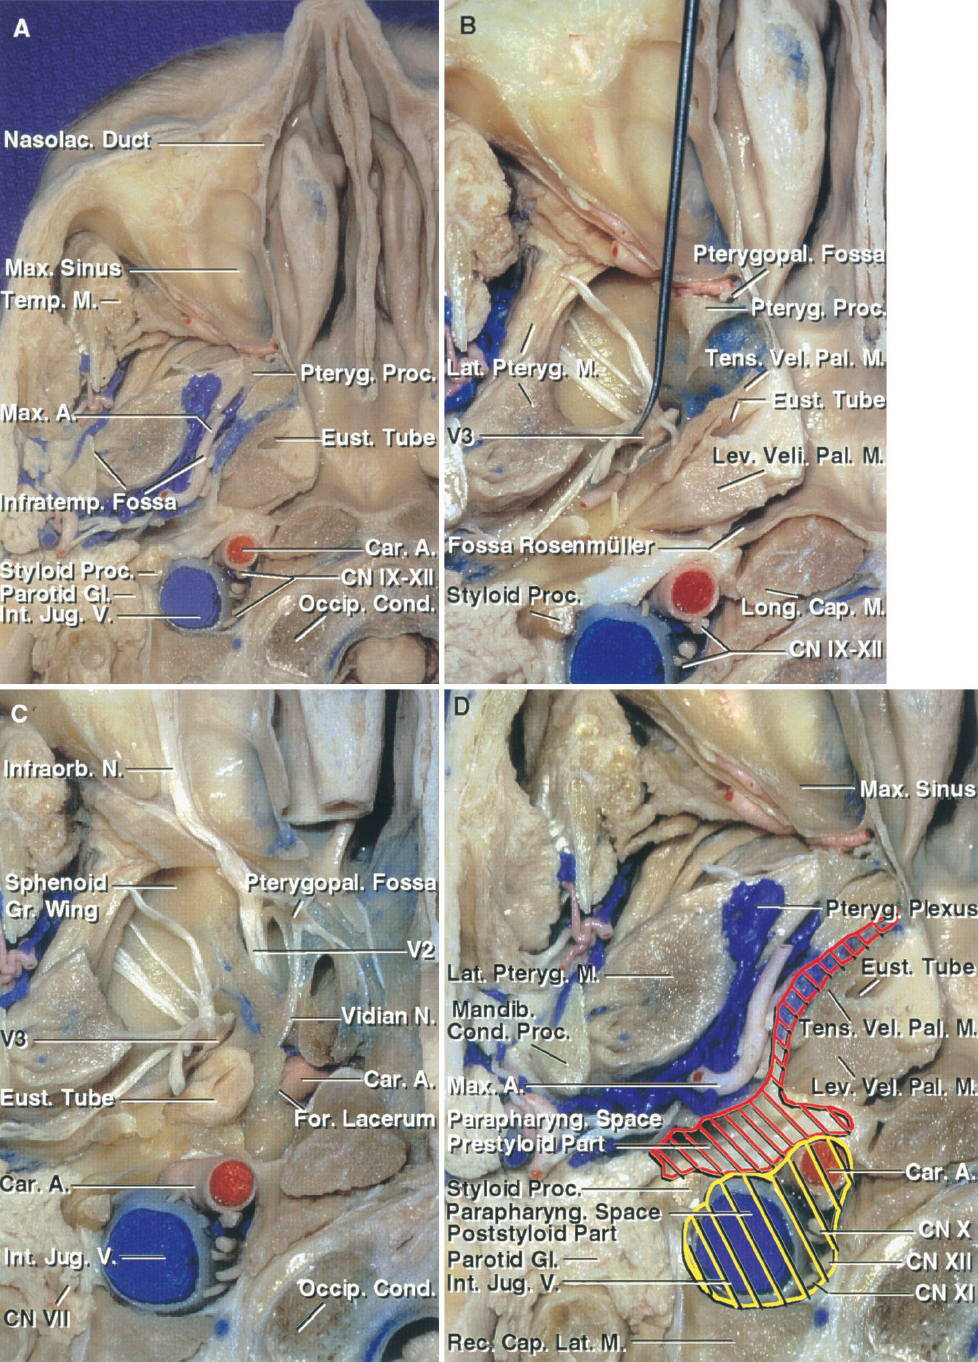 FIGURE 8.9. Inferior views of an axial section of the skull base. A, the infratemporal fossa is surrounded by the maxillary sinus anteriorly, the mandible laterally, the sphenoid pterygoid process anteromedially, and the parapharyngeal space posteromedially, and contains the mandibular nerve and maxillary artery and their branches, the medial and lateral pterygoid muscles, and the pterygoid venous plexus. B, part of the lateral pterygoid muscle has been removed to expose the branches of the trigeminal nerve coursing in the infratemporal fossa below the greater sphenoid wing. The pterygopalatine fossa is located between the posterior maxillary wall anteriorly, the sphenoid pterygoid process posteriorly, the nasal cavity medially, and the infratemporal fossa laterally. The pharyngeal recess (fossa of Rosenmuller) projects laterally from the posterolateral corner of the nasopharynx with its lateral apex facing the internal carotid artery laterally and the foramen lacerum above. The posterior nasopharyngeal wall is separated from the lower clivus and the upper cervical vertebra by the longus capitis, and the nasopharyngeal roof rests against the upper clivus and the posterior part of the sphenoid sinus floor. C, the sphenoid pterygoid process has been removed to expose the maxillary nerve passing through the foramen rotundum to enter the pterygopalatine fossa where it gives rise to the infraorbital nerve, which courses in the roof of the maxillary sinus. The maxillary nerve within the pterygopalatine fossa gives off communicating rami to the pterygopalatine ganglion. The vidian nerve, formed by the union of the deep petrosal nerve from the carotid sympathetic plexus and the greater petrosal nerve, courses forward through the vidian canal to join the pterygopalatine ganglion. The terminal part of the petrous carotid is exposed above the foramen lacerum. D, enlarged view with highlighting of the pre- (red) and poststyloid (yellow) compartments of the parapharyngeal space.